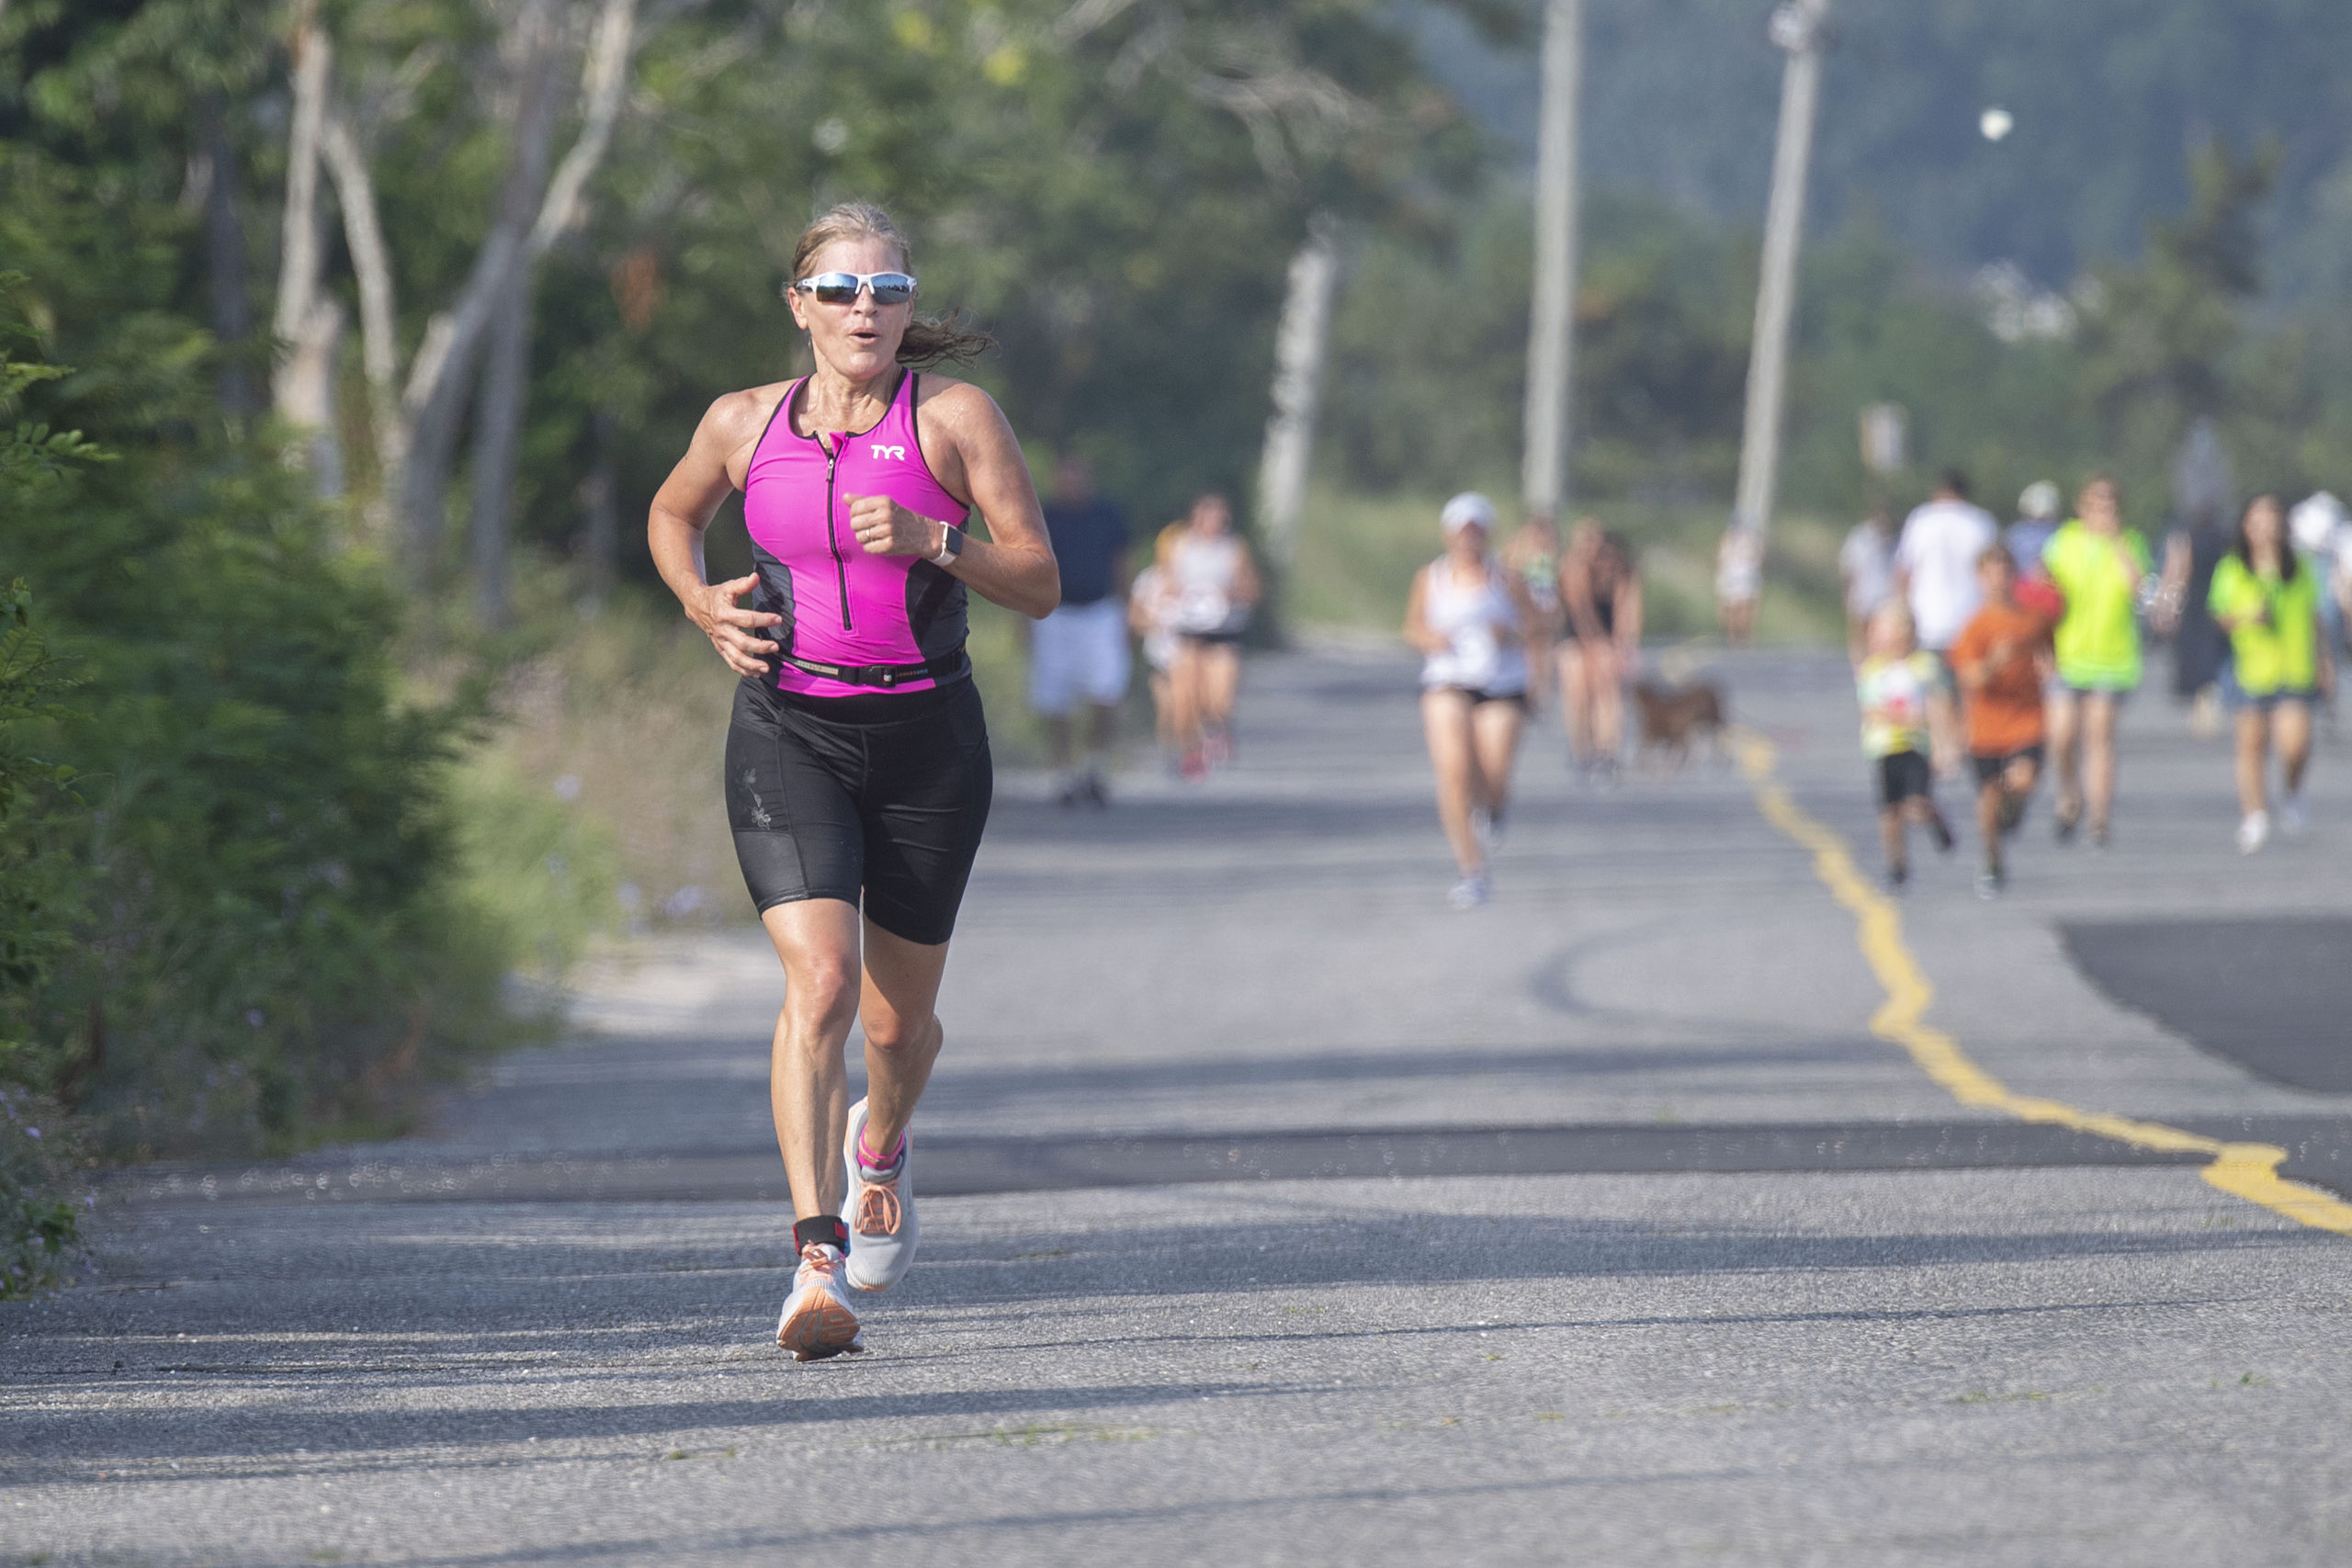 Kim Covell, assistant editor for the Express News Group, competes in the 1.5 mile run leg of the Hamptons Young at Heart Triathlon, held at Long Beach in Sag Harbor this past Saturday, July 17.